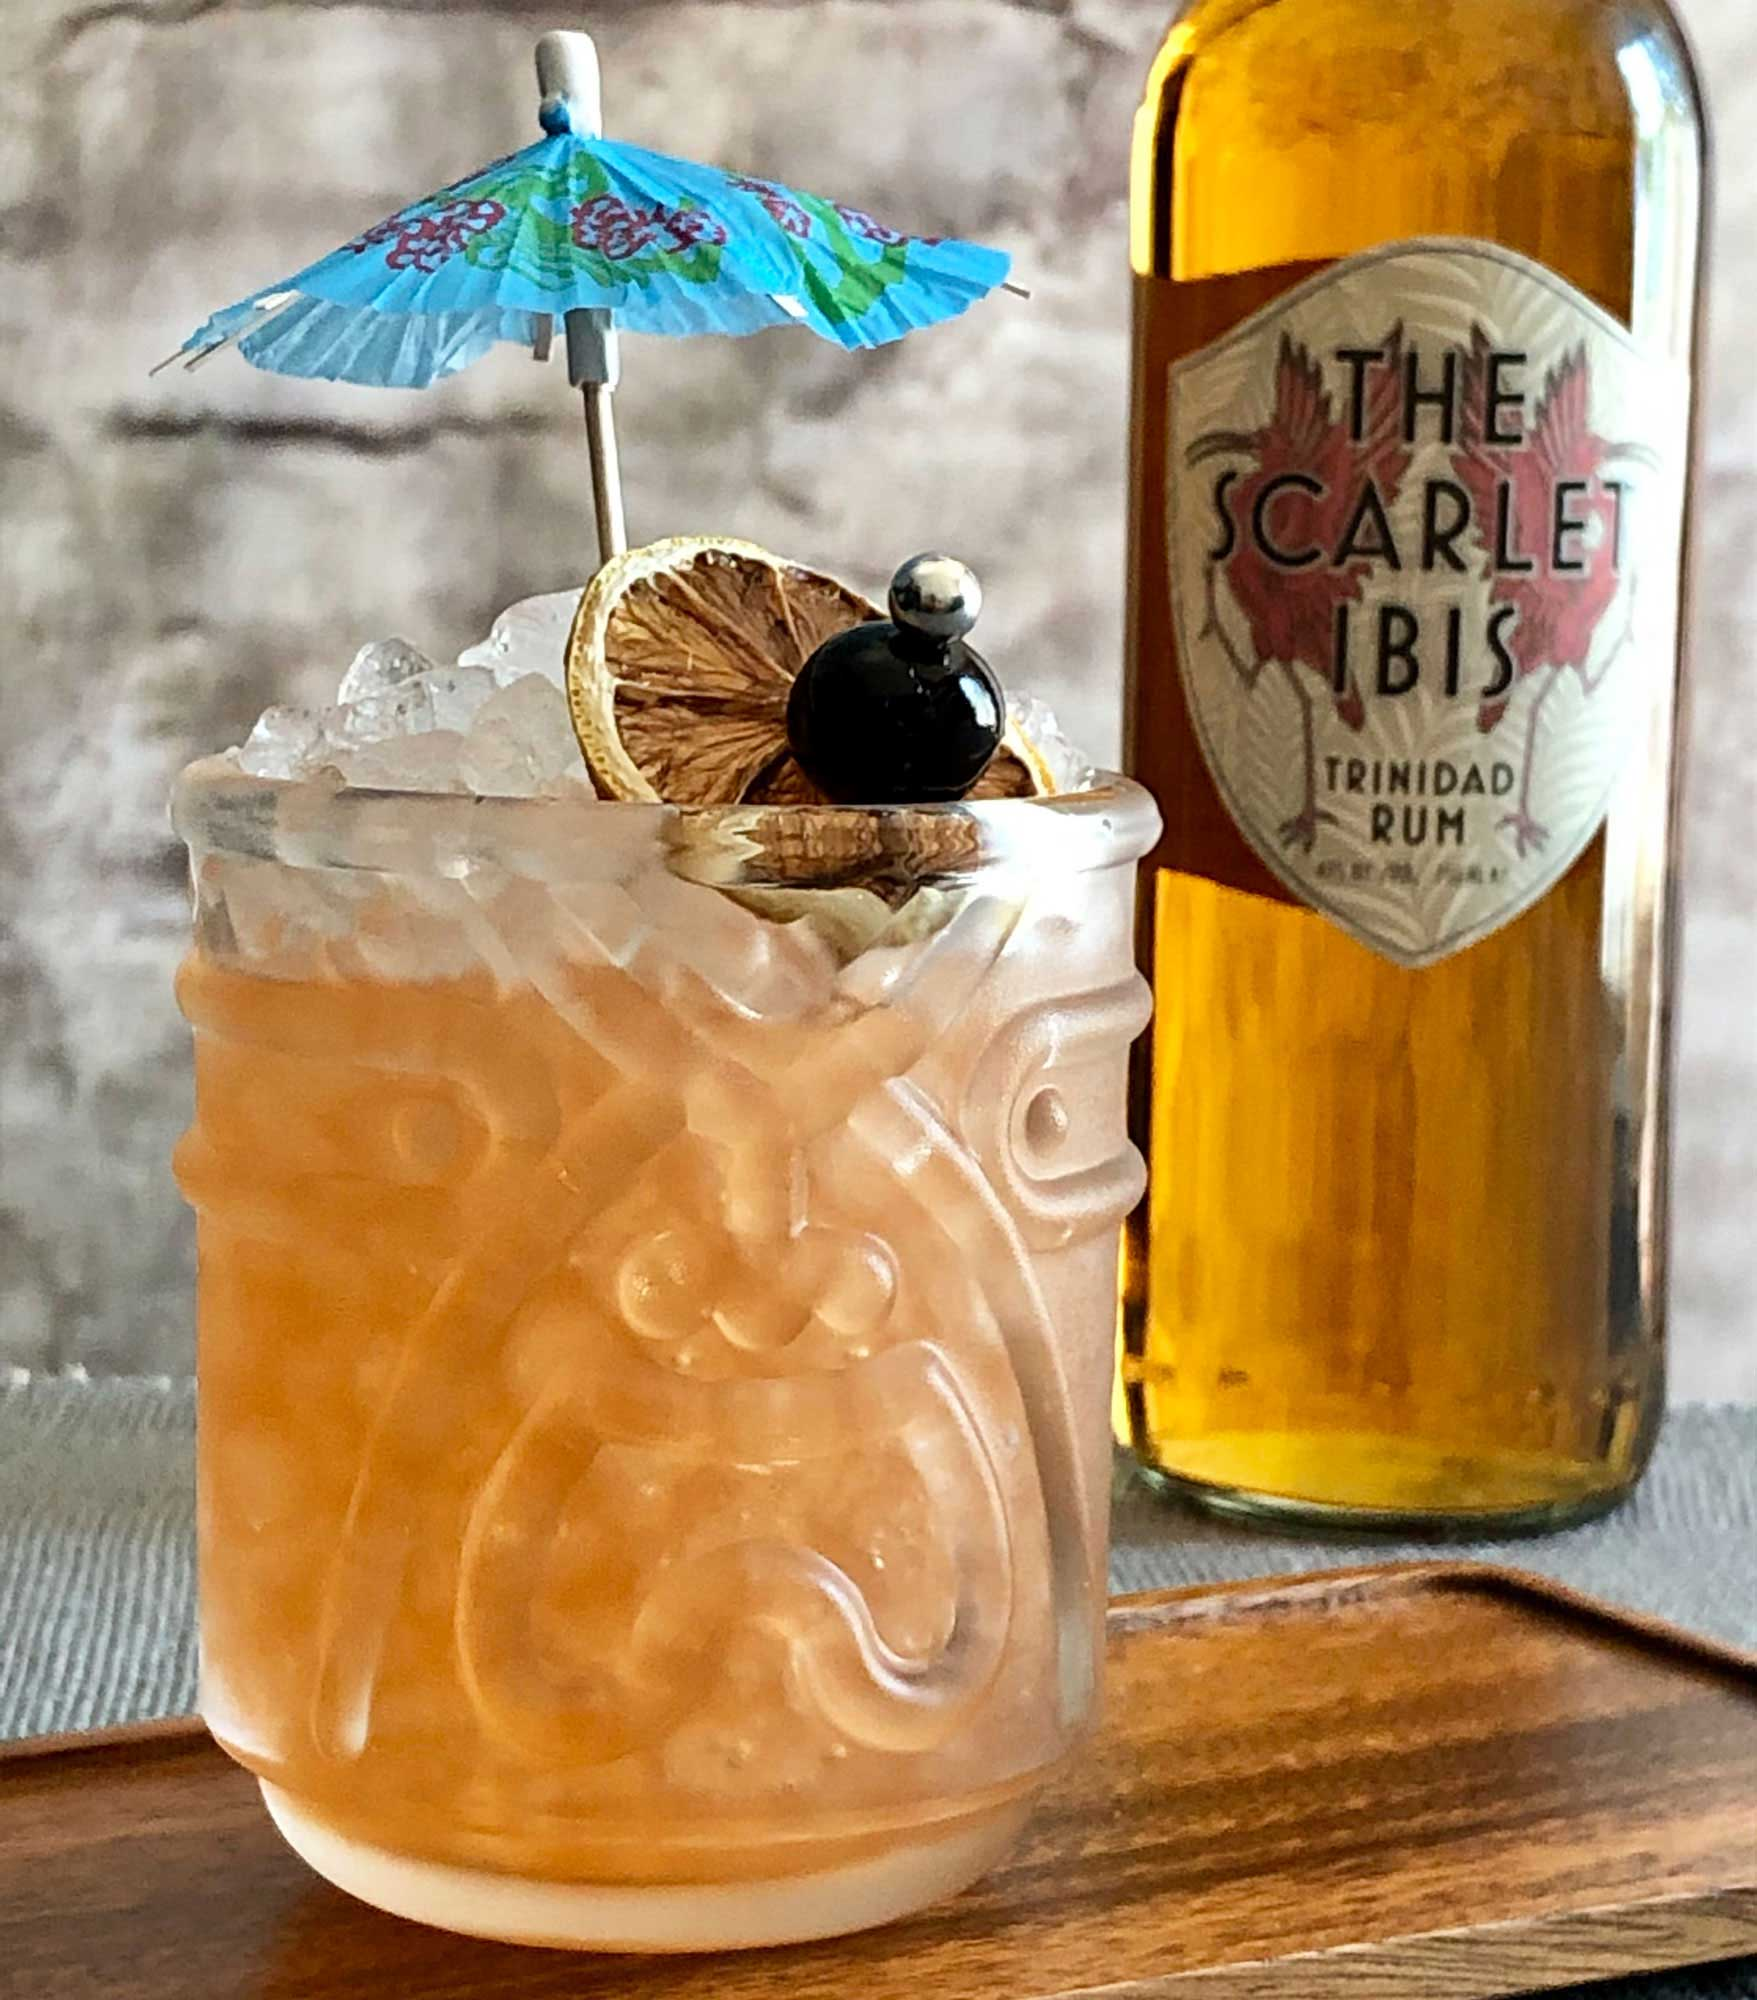 An example of the Test Pilot Punch, the mixed drink (punch), by based on a cocktail by Don the Beachcomber, featuring John D. Taylor's Velvet Falernum, Smith & Cross Traditional Jamaica Rum, The Scarlet Ibis Trinidad Rum, orange-flavored liqueur, lime juice, pastis, and Angostura bitters; photo by Lee Edwards